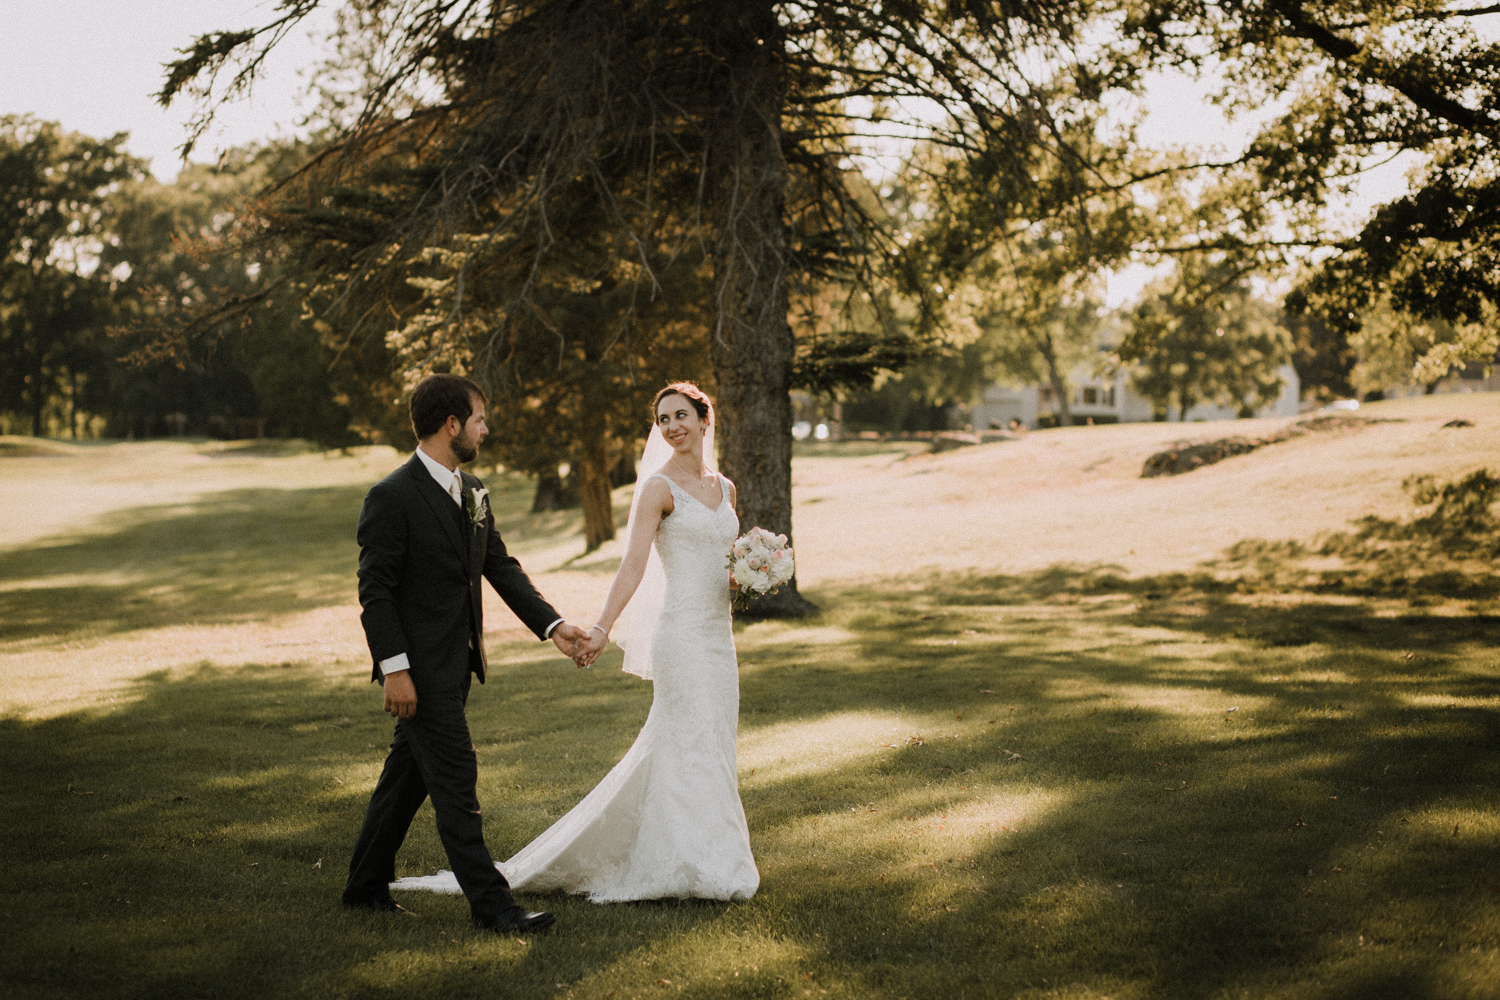 valley _country_club_walking_smiling_bride_groom_bouquet_outdoors_trees_dress_outdoors_connecticut_rhode_island_massachusetts_new_england_wedding_photography_photographer_natural_laid_back_fun_adventure_light_engagement_session.jpg